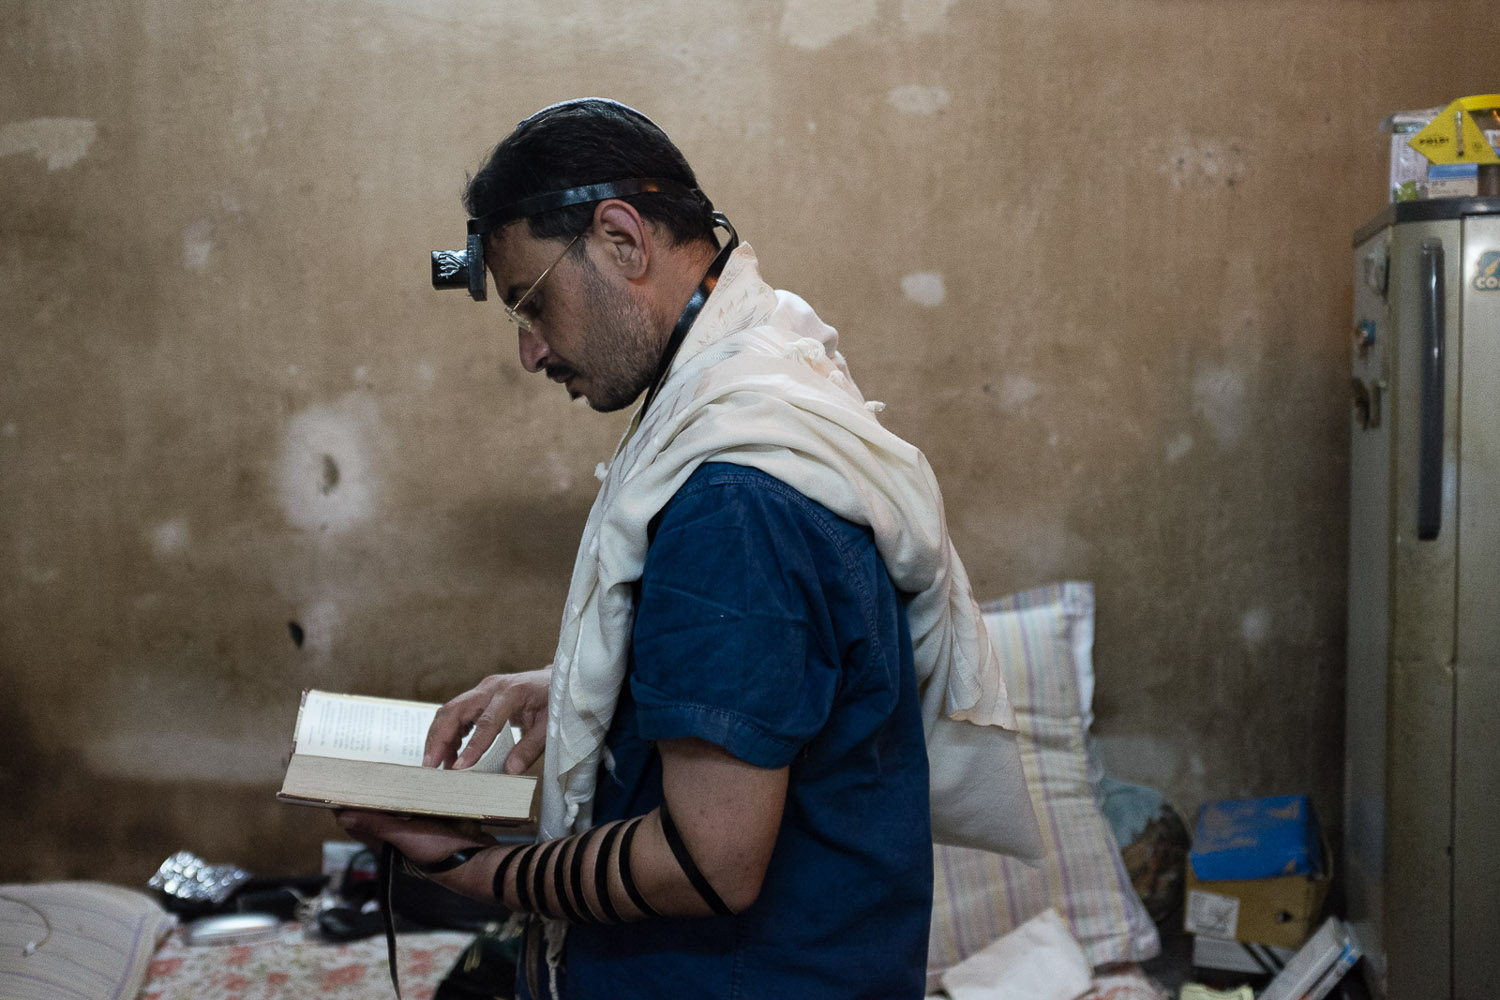 "Shalom Israel lives in Calcutta, but he is immigrating to Israel. He tries to pray every day. Sometimes it doesn't happen before noon, ""like it should"", he says, but he makes an effort."